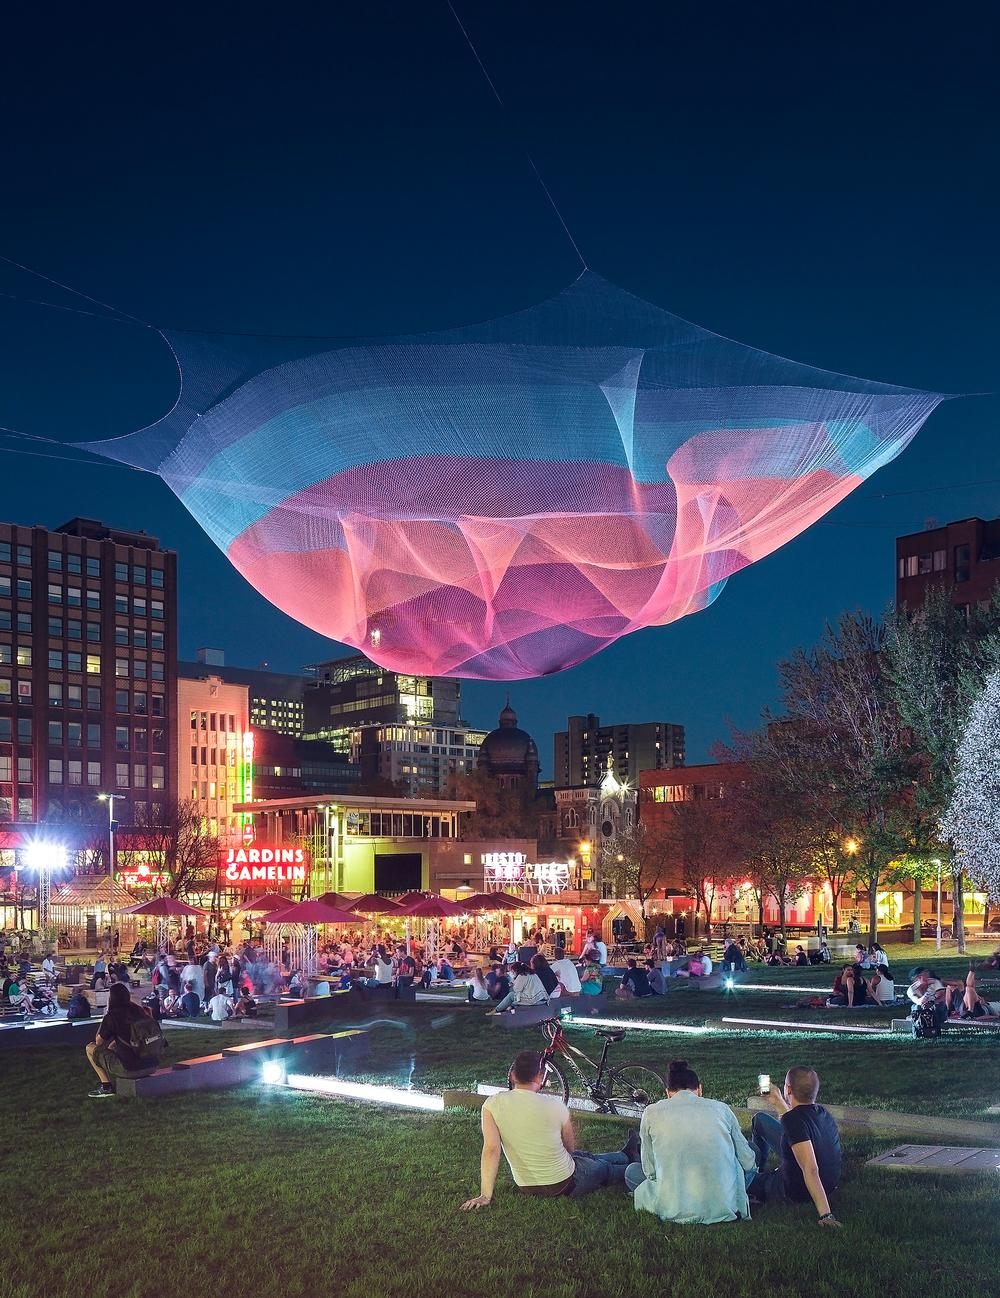 The open air bar/event space Jardins Gamelin features an illuminated suspended sculpture  / Ulysse Lemerise OSA